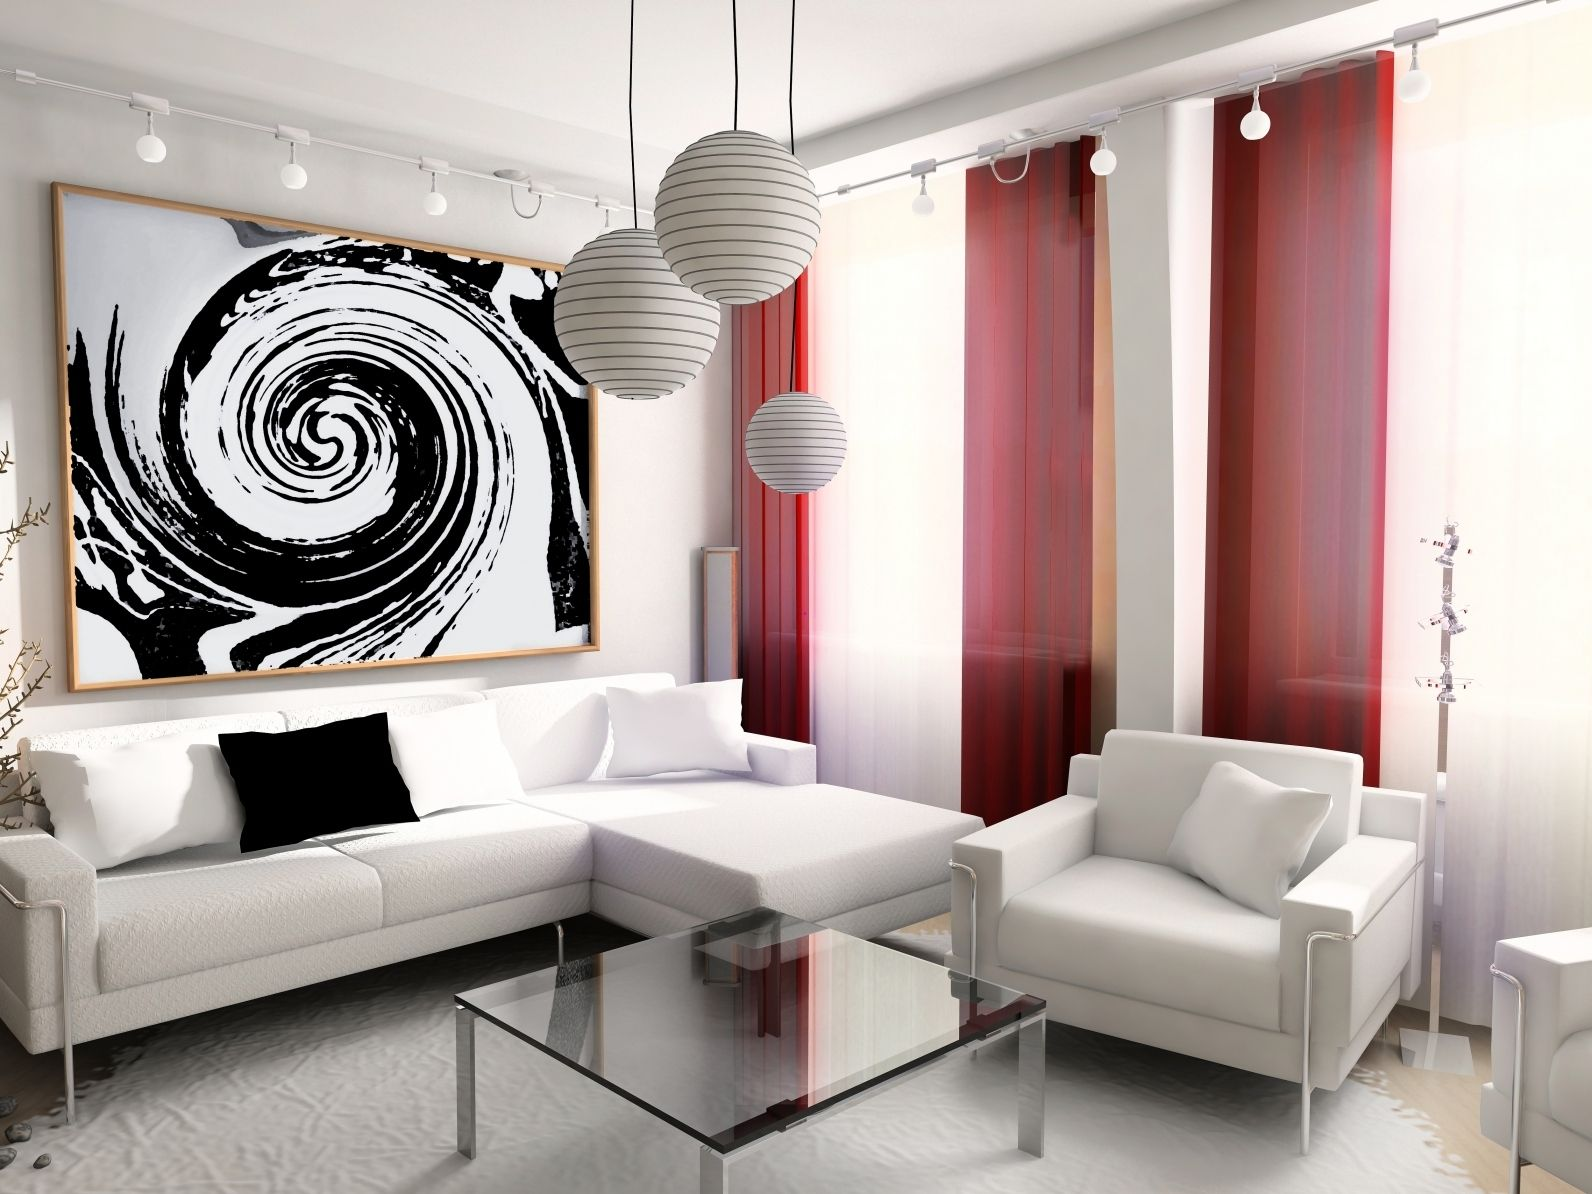 Black and white living room - White Living Room W Pops Of Black And Red But Need Crisp White